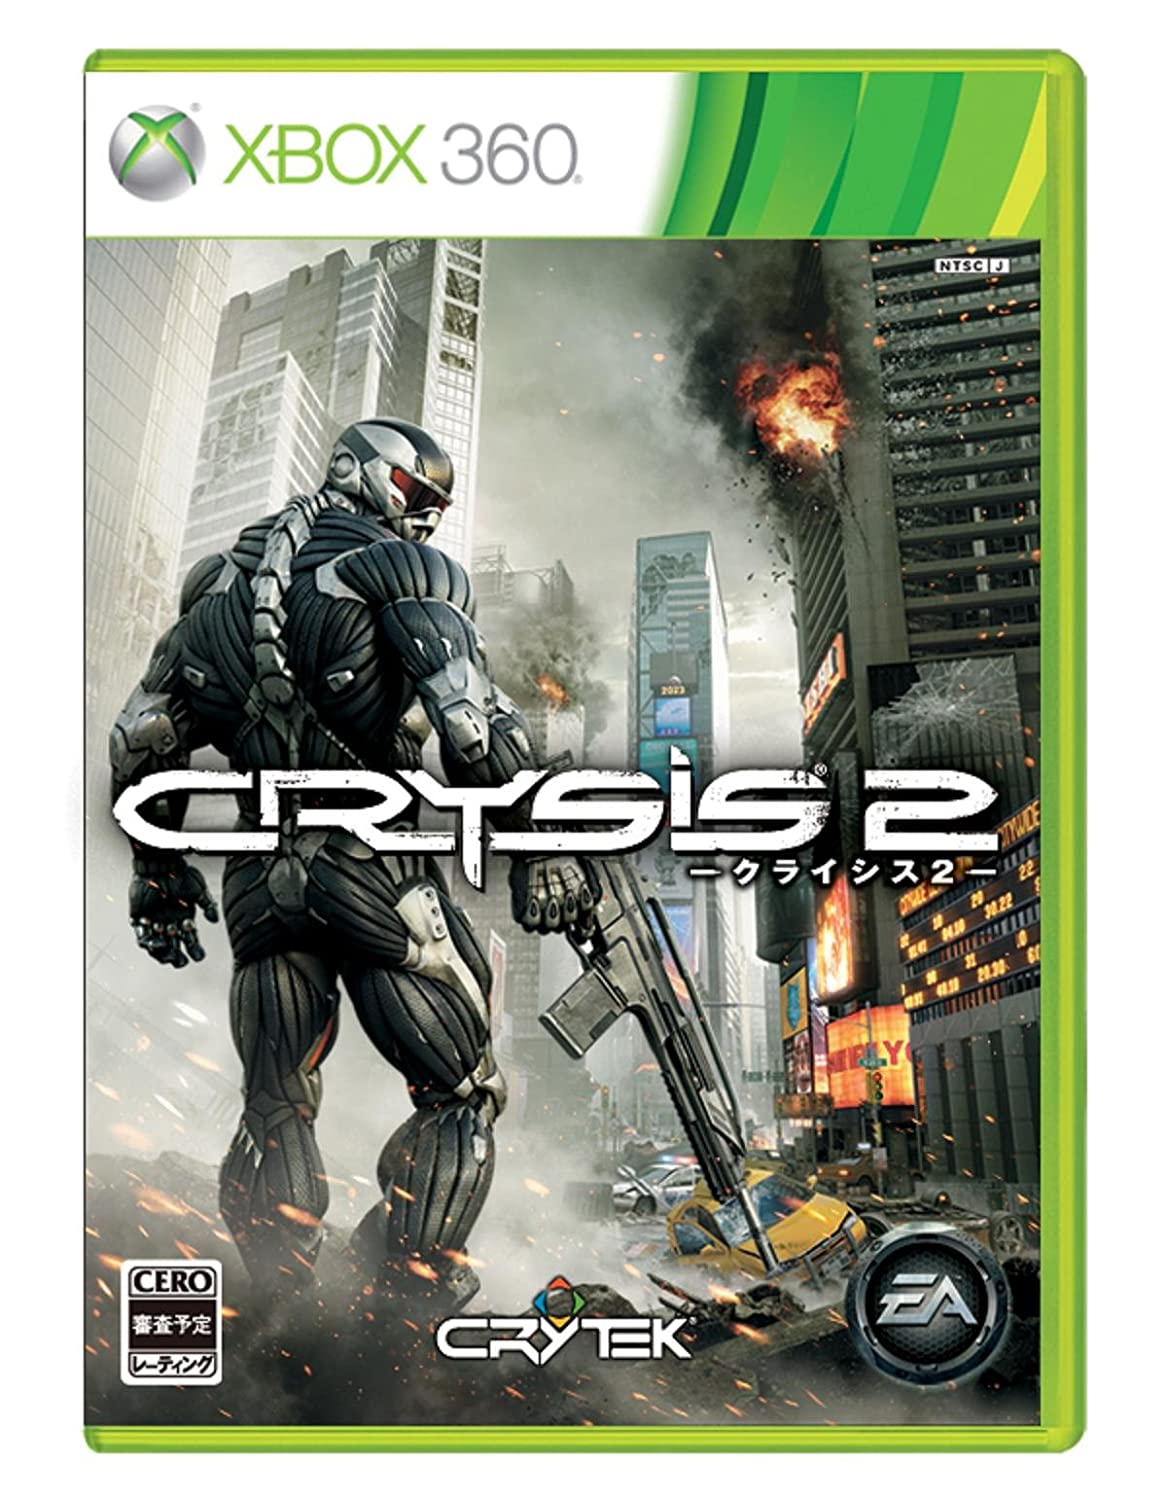 Crysis Surprise price 2 Japan Outstanding Import